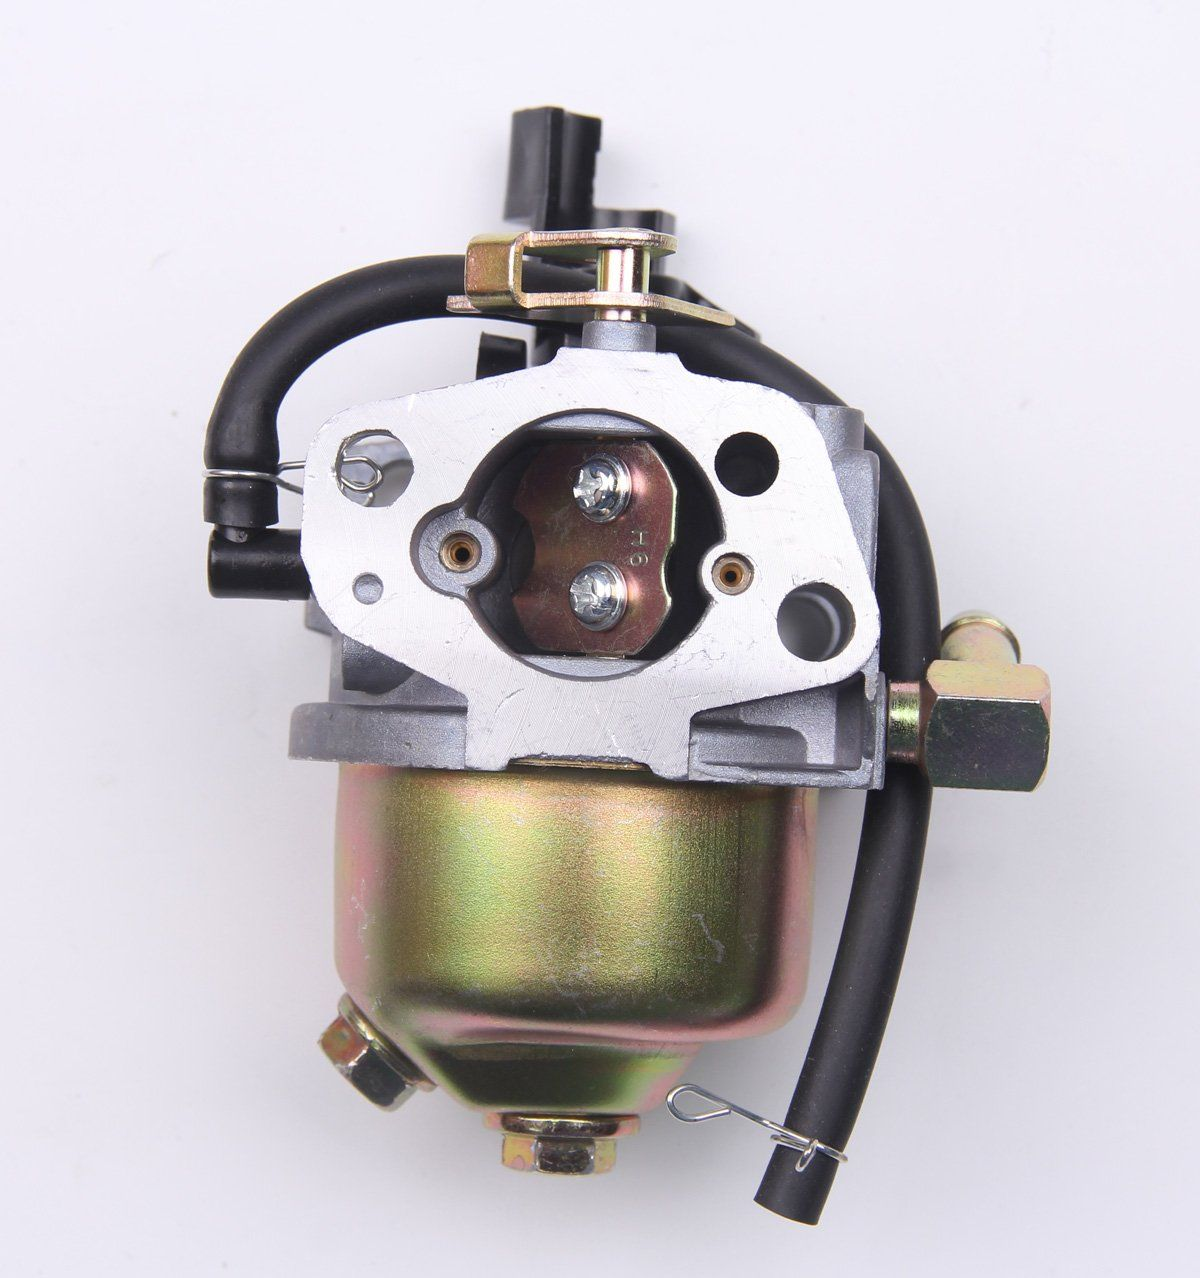 medium resolution of new carburetor with gaskets primer and fuel filter for troy bilt mtd cub cadet snow blower 95114026a 95114027a 95110638a see this great product